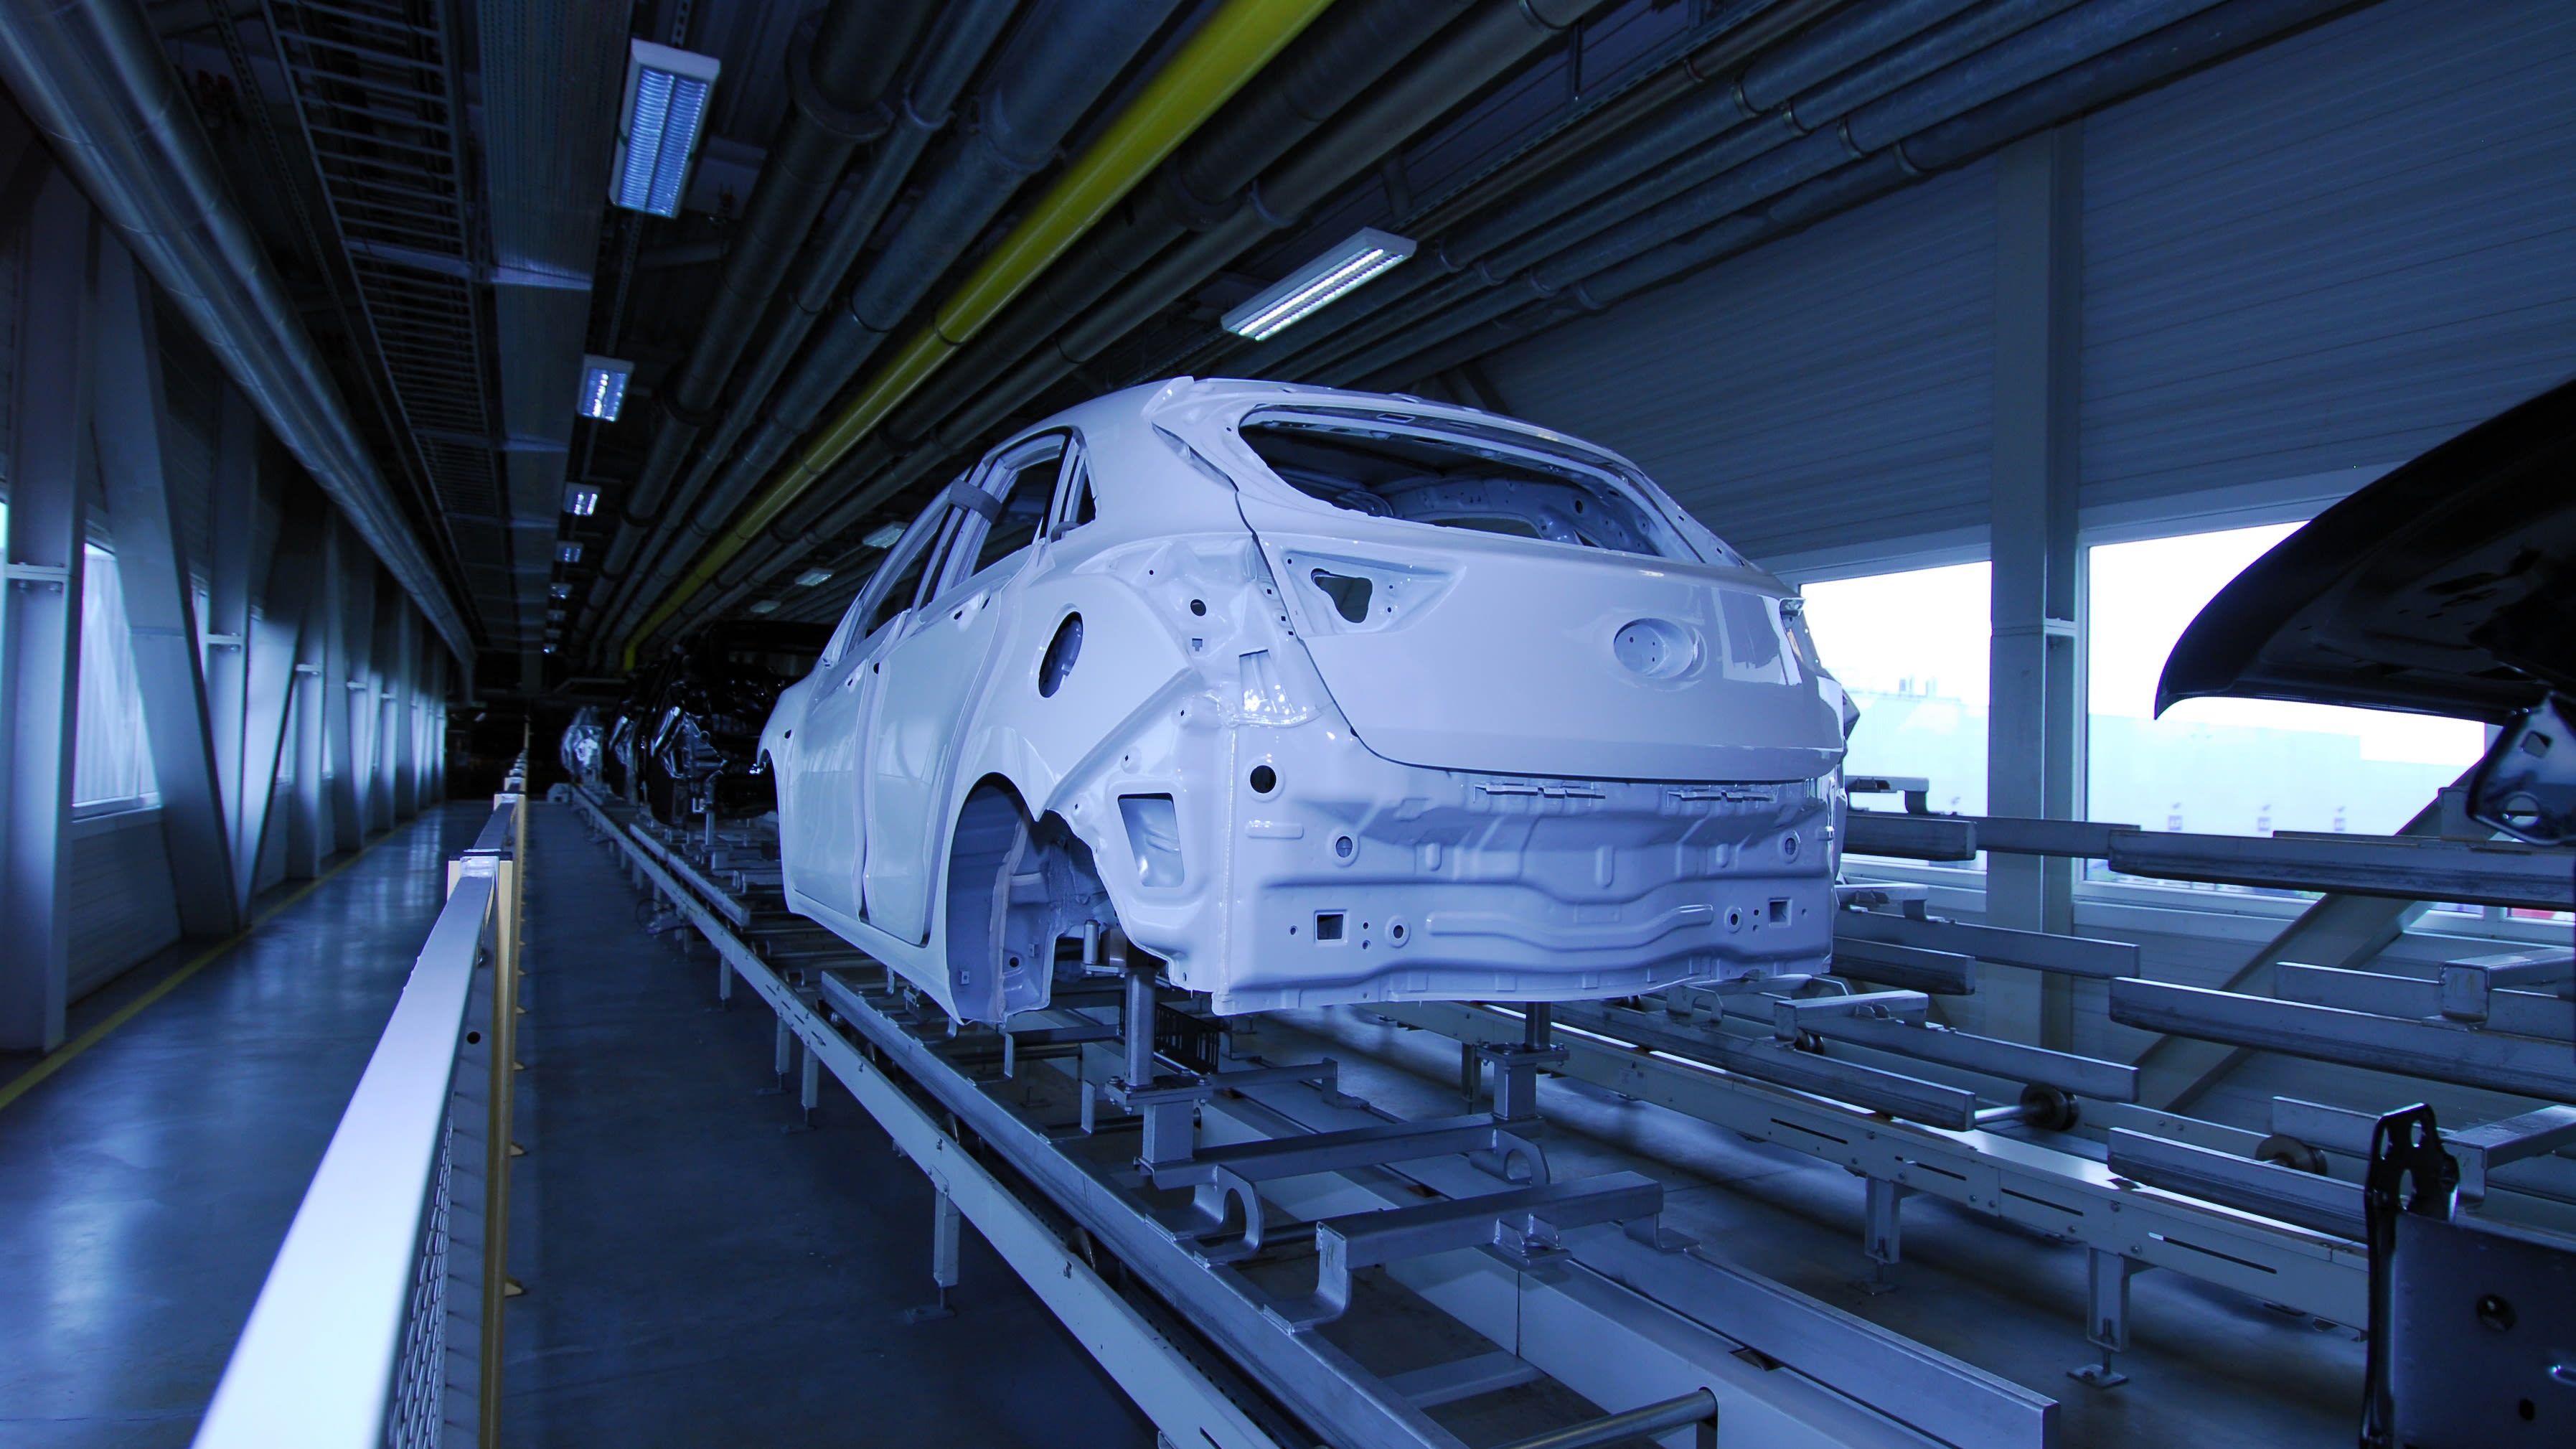 Downtime reasons and production status for automotive manufacturers